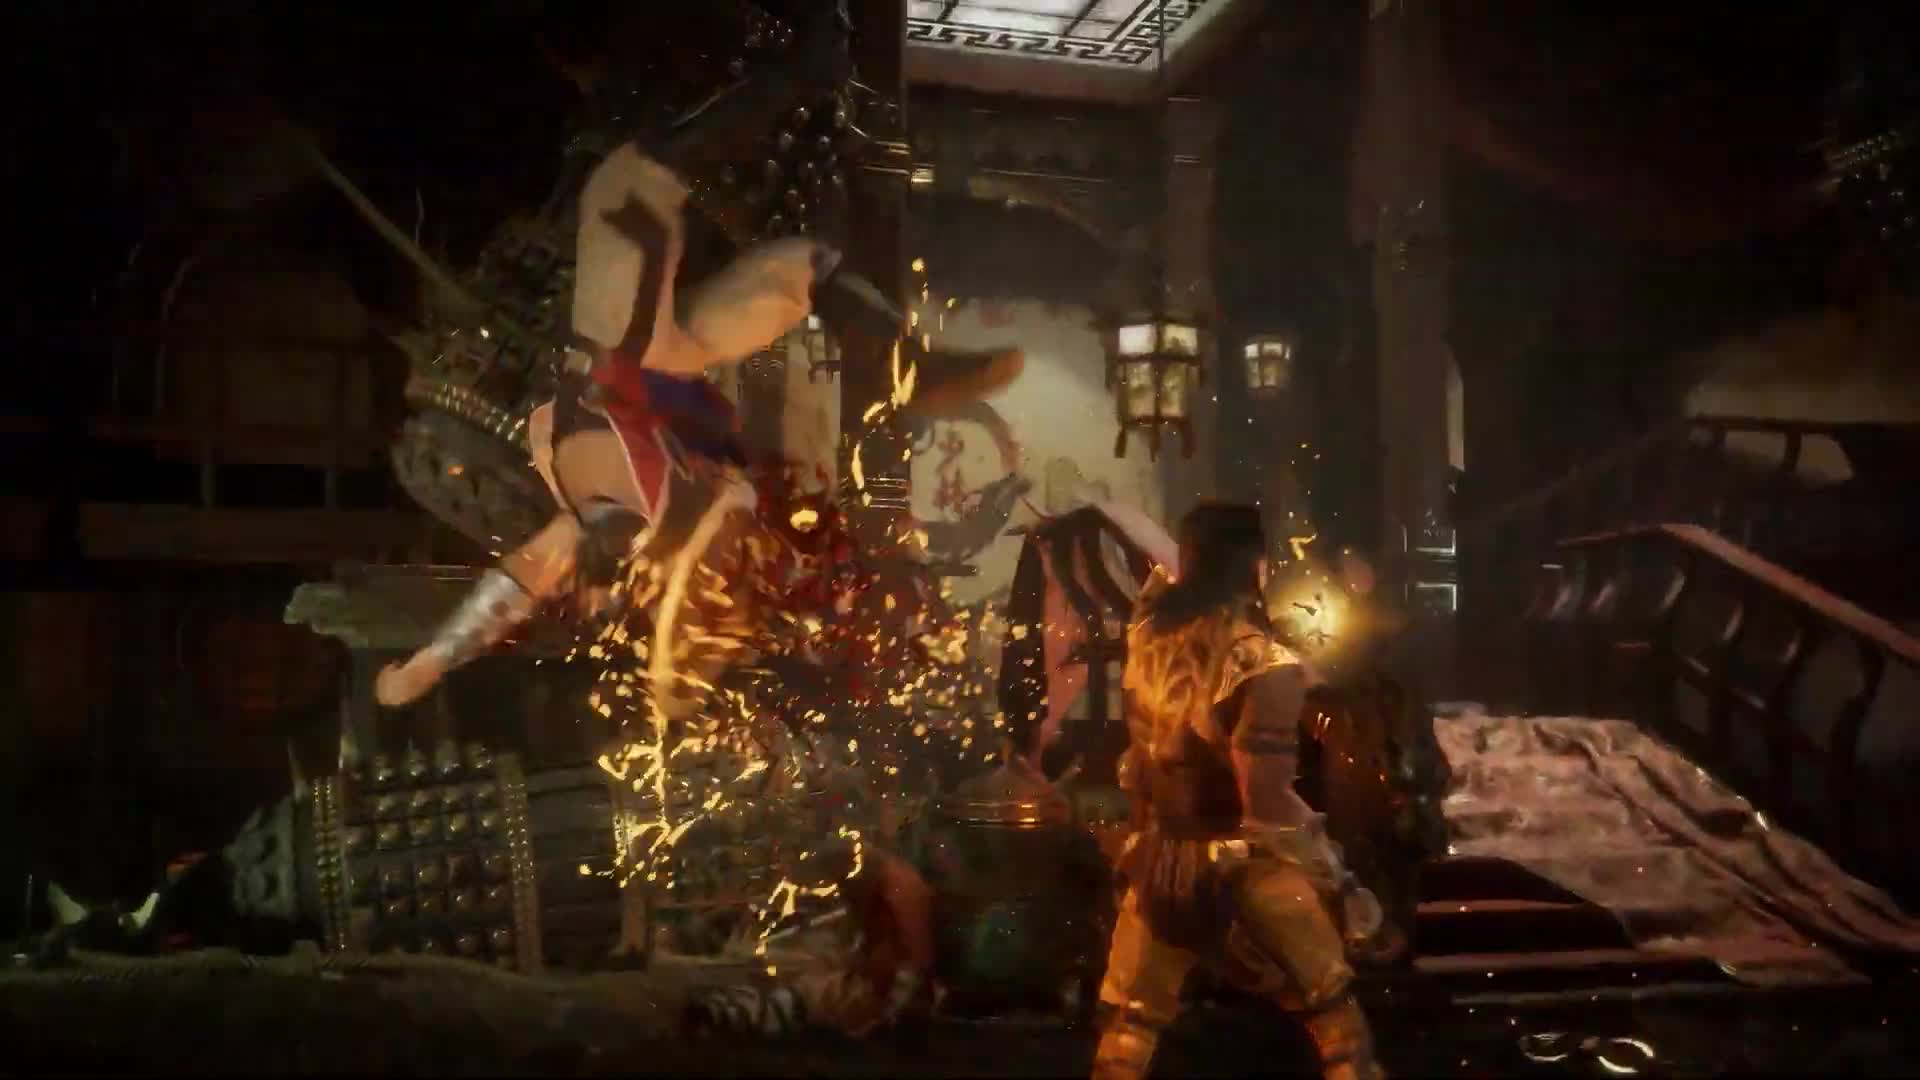 Mortal Kombat 11 Trailer Gifs Search | Search & Share on Homdor